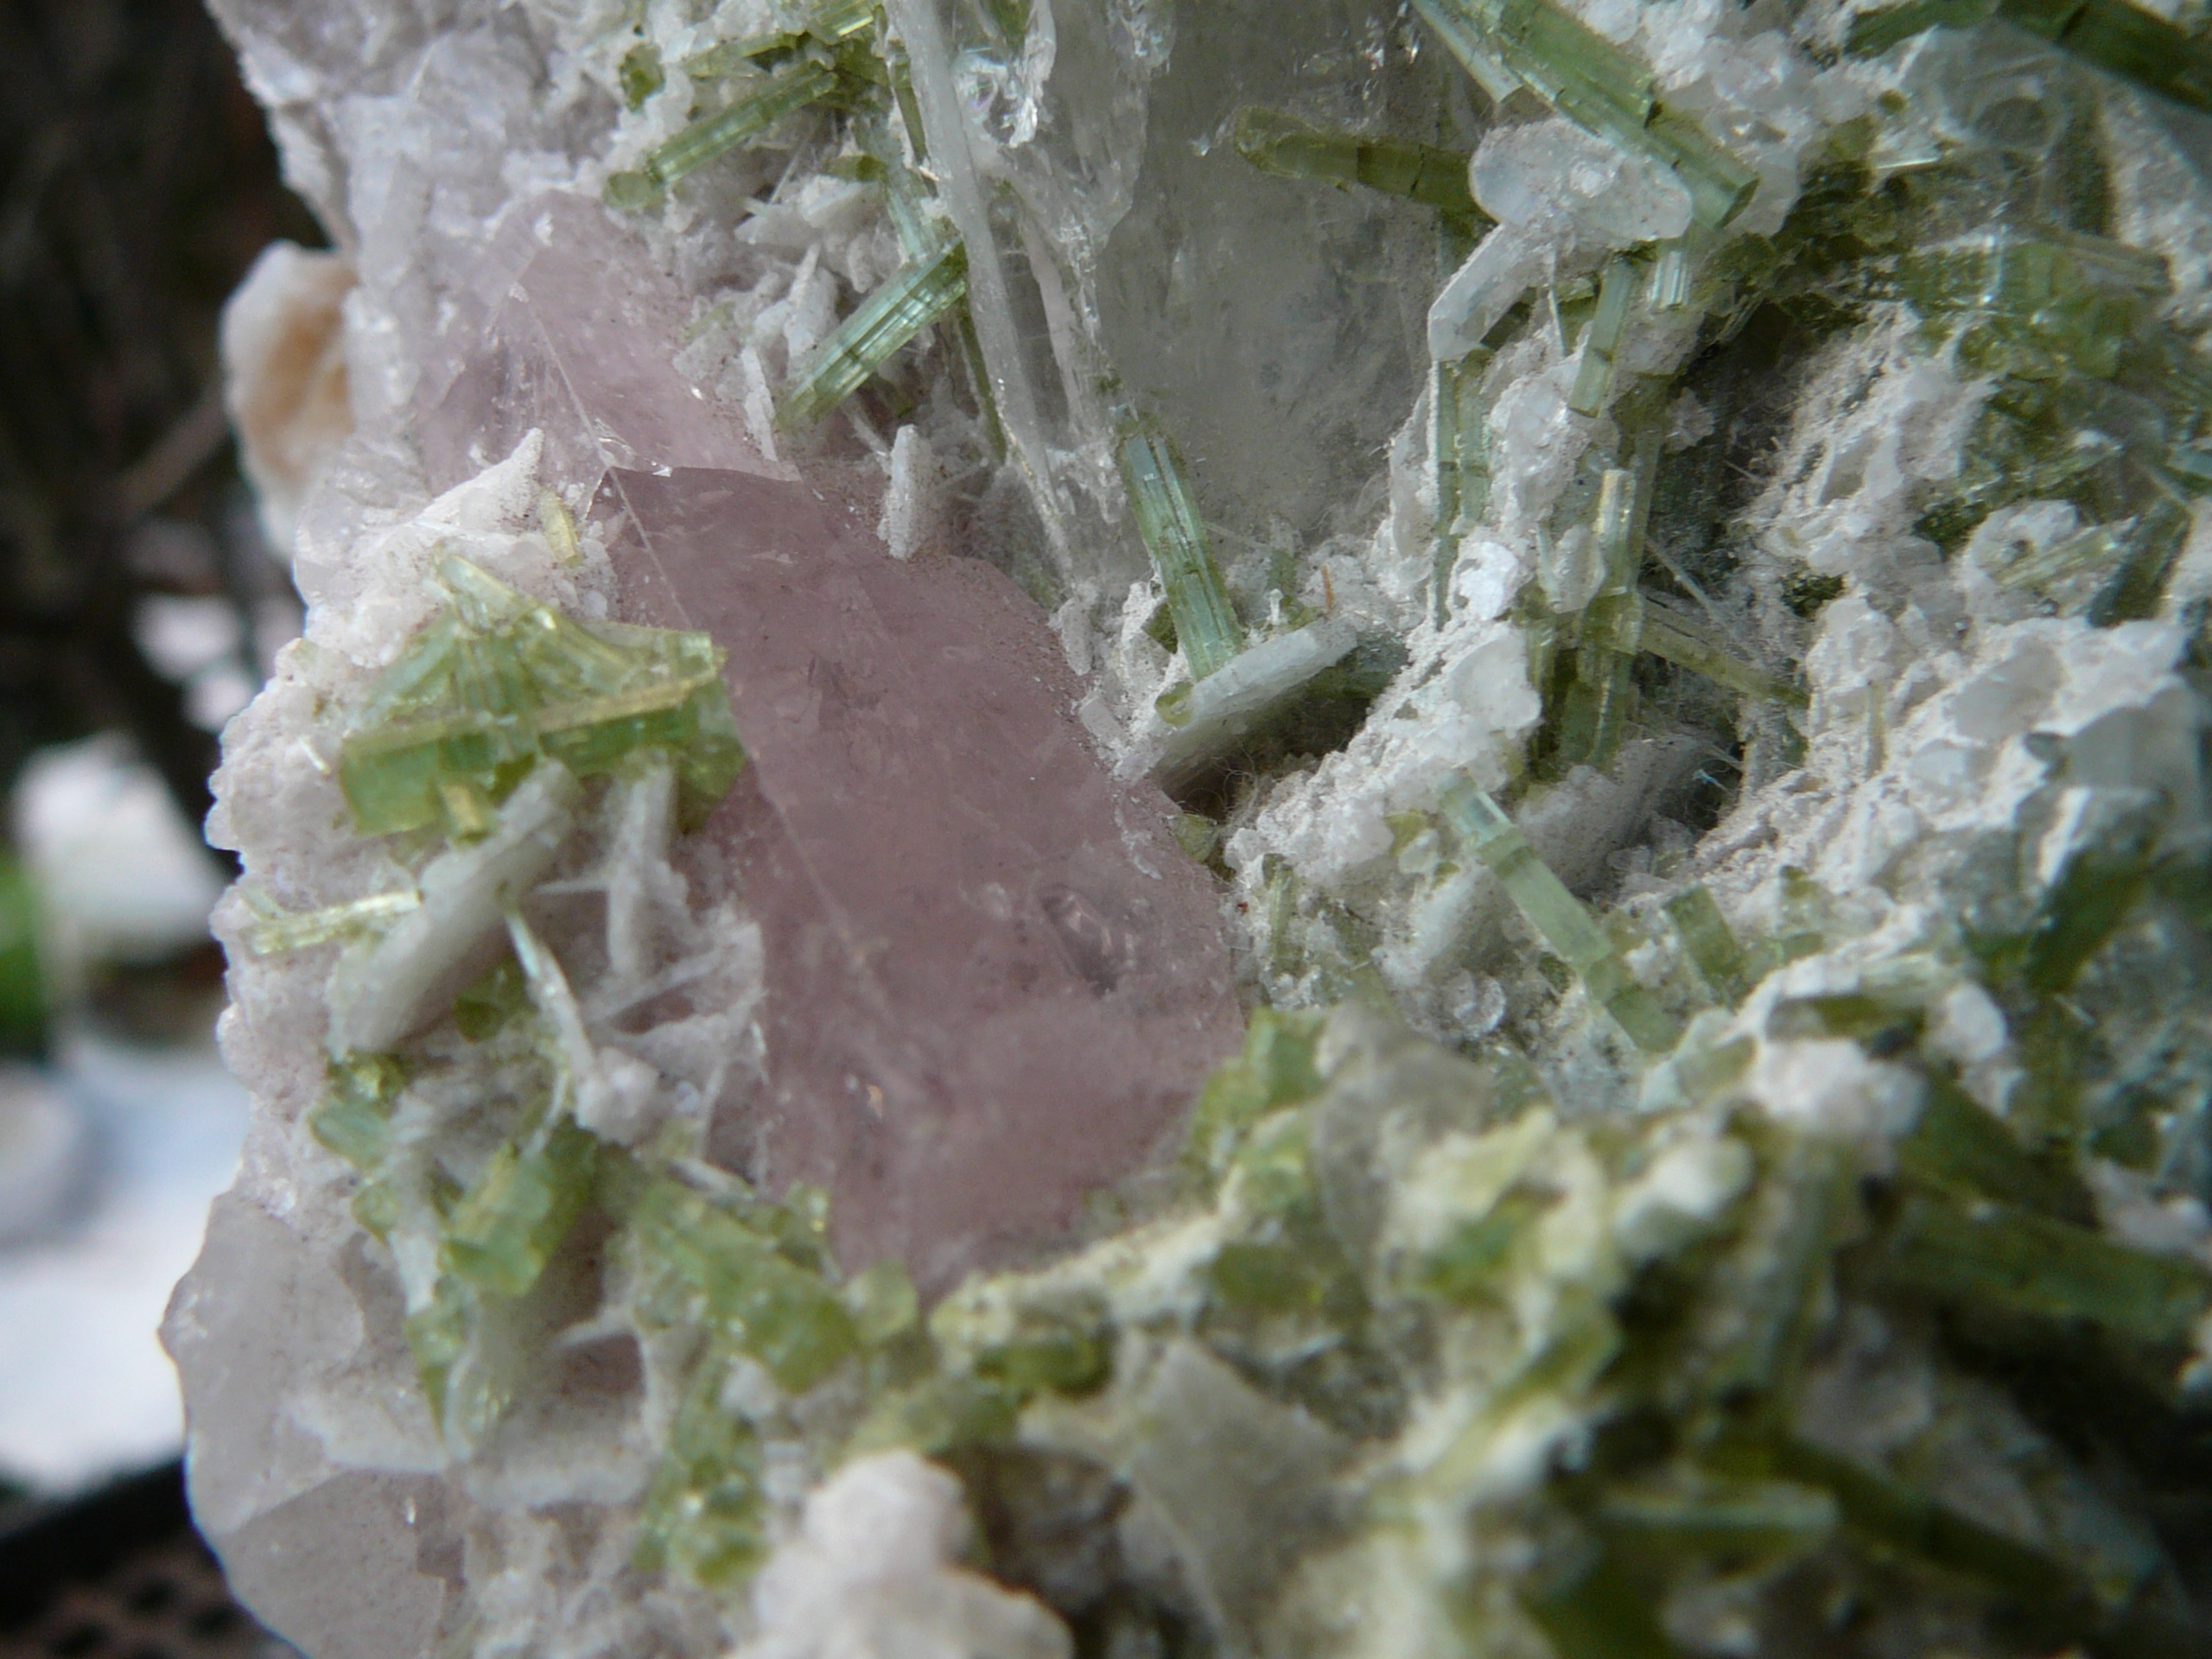 Beryl (var. Morganite) with green tourmaline crystals